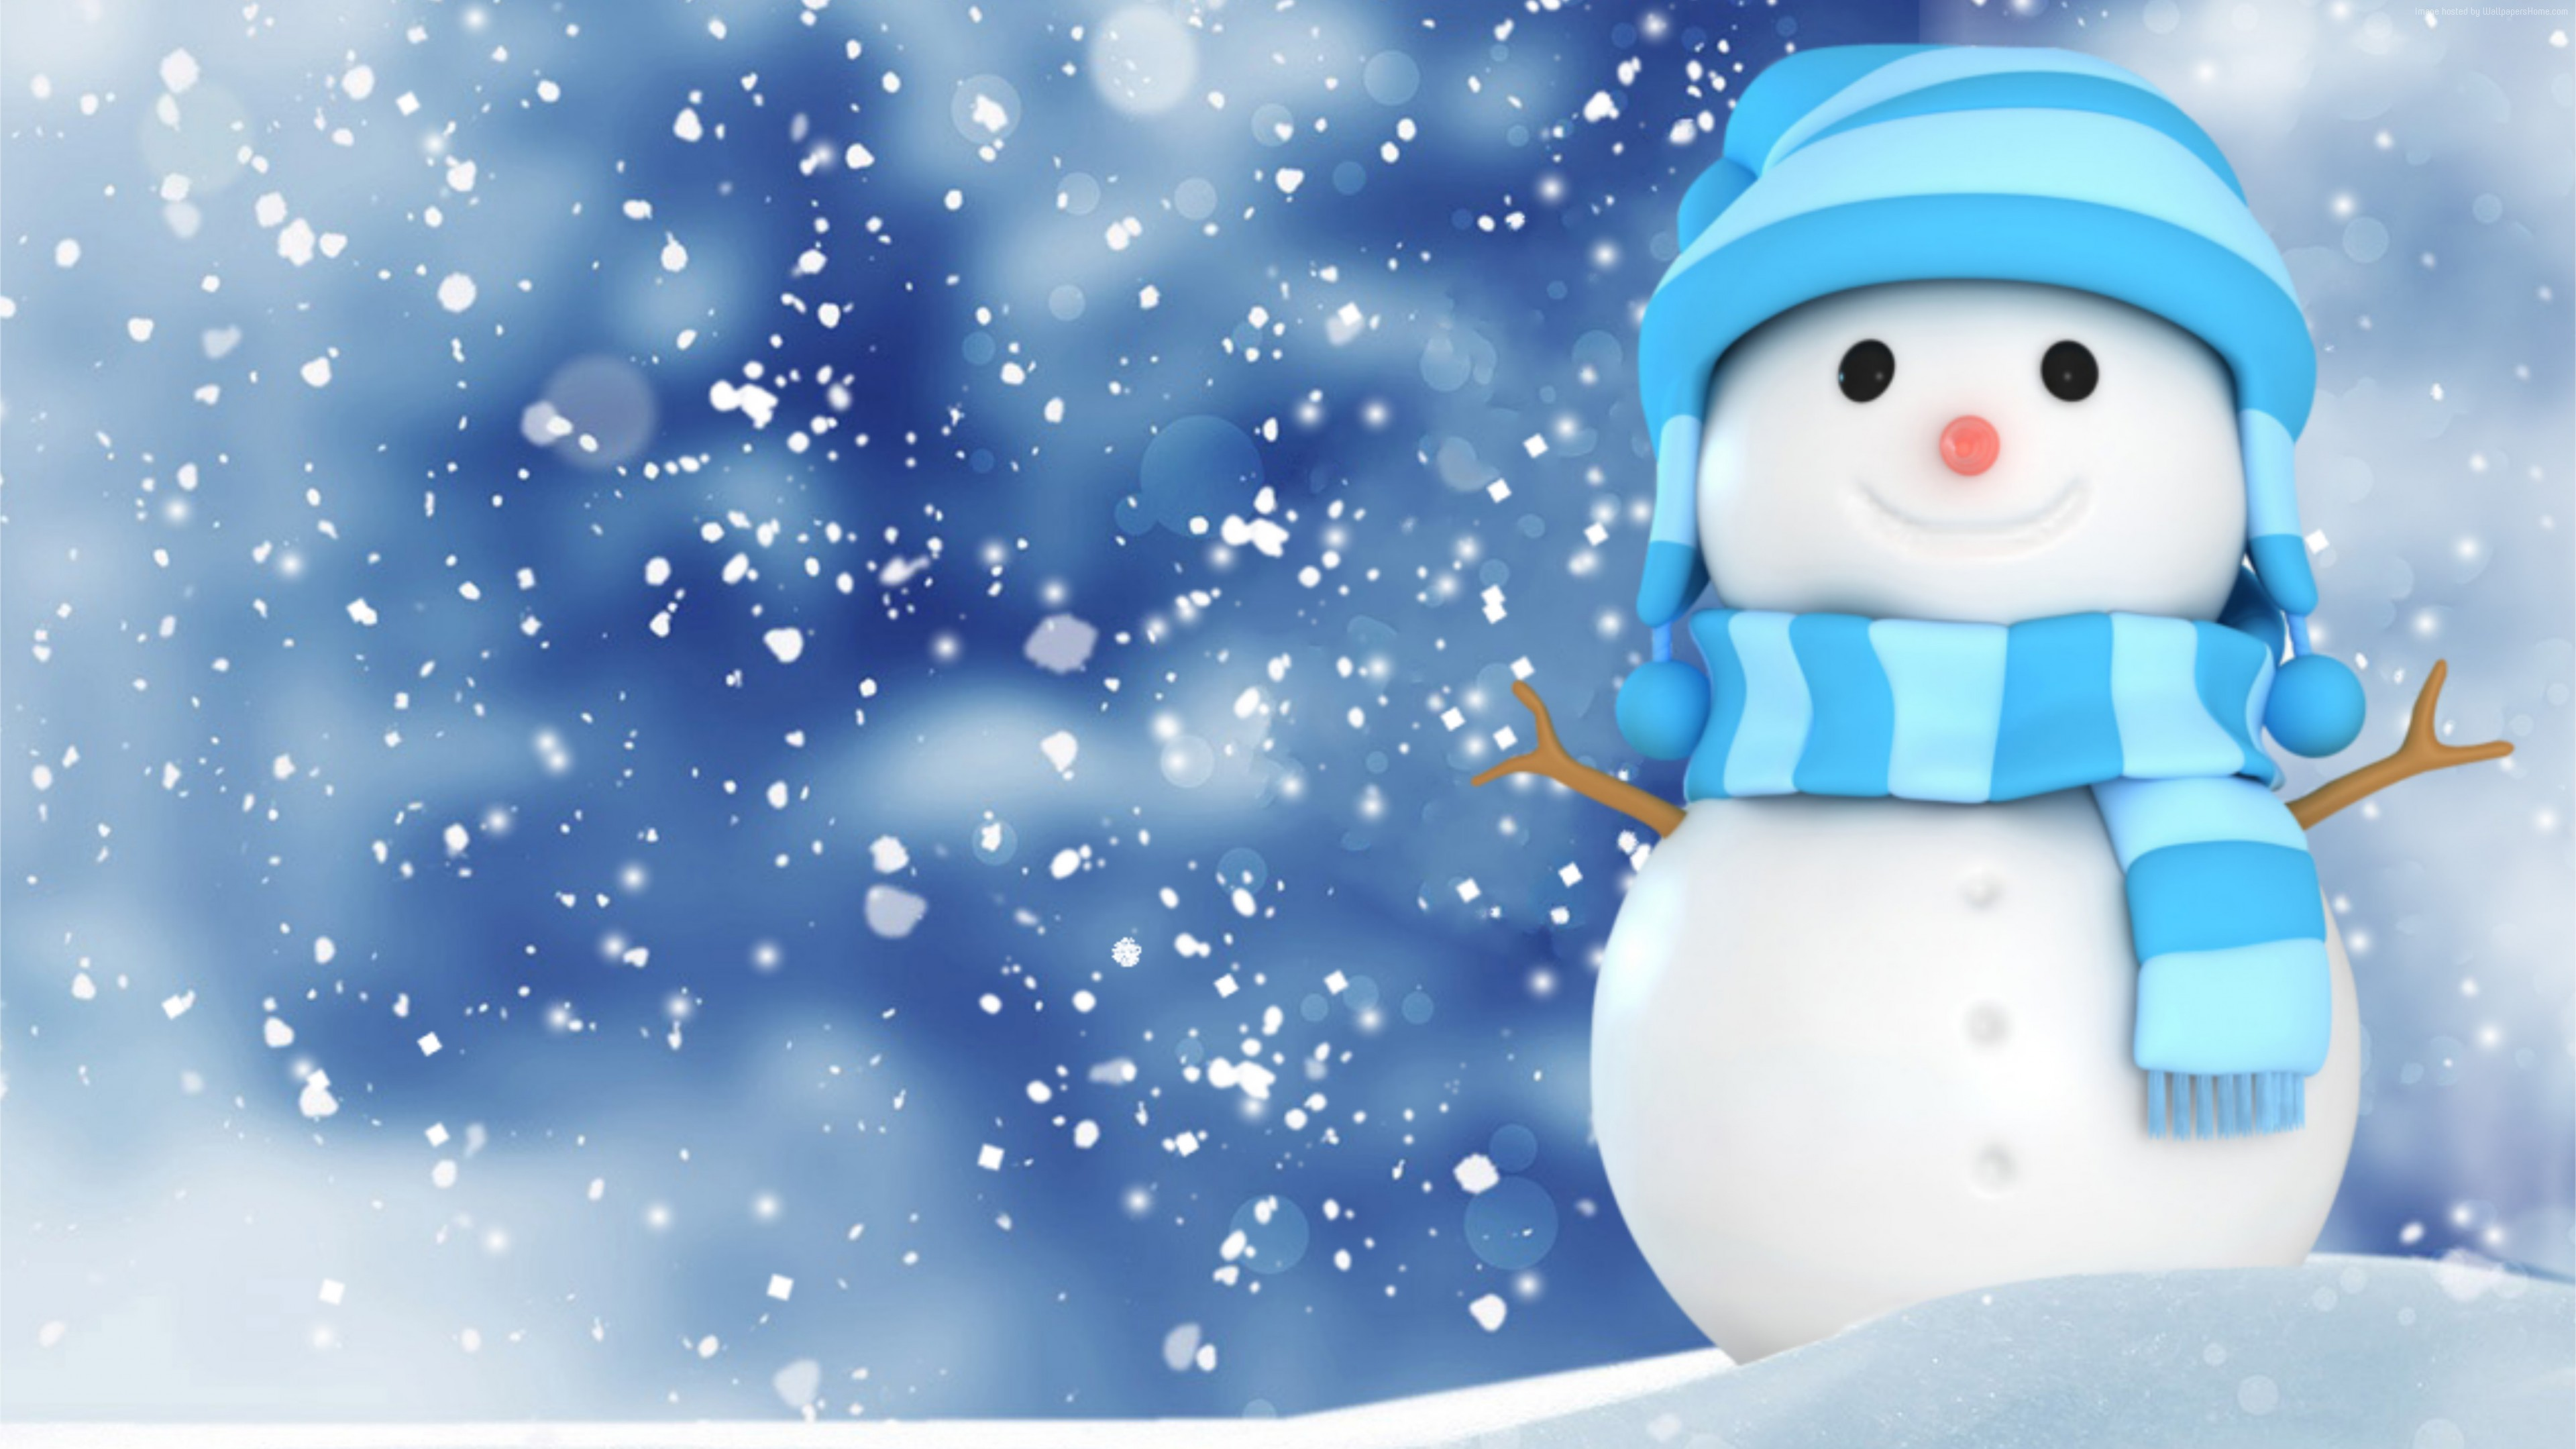 Wallpaper Christmas, New Year, snow, winter, snowman, 4k, Holidays